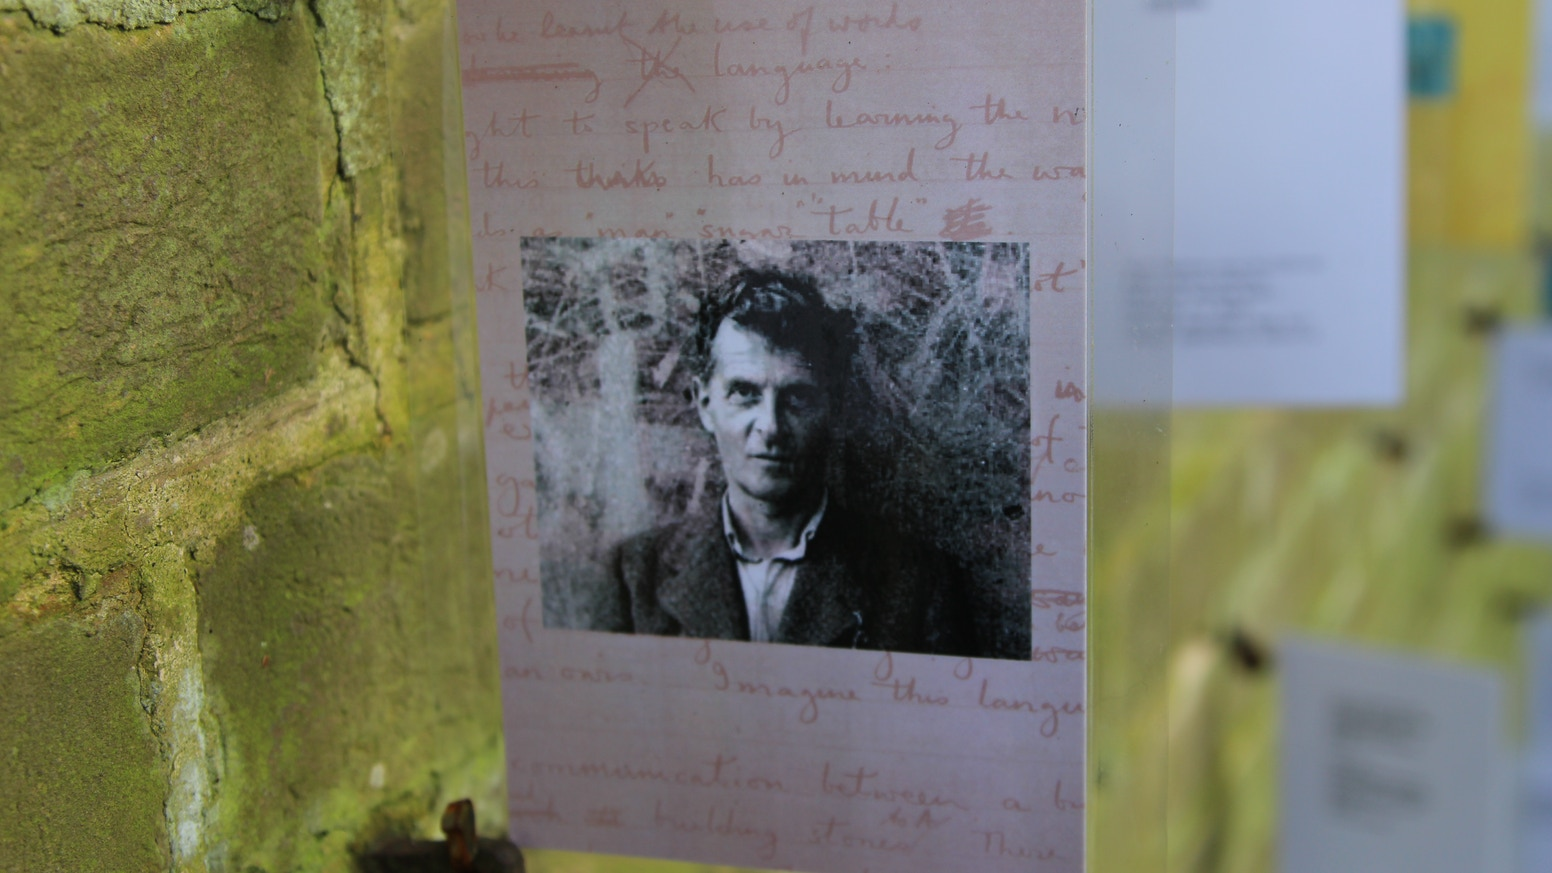 A unique exhibition of visual and text art connected with the philosophy of Ludwig Wittgenstein.